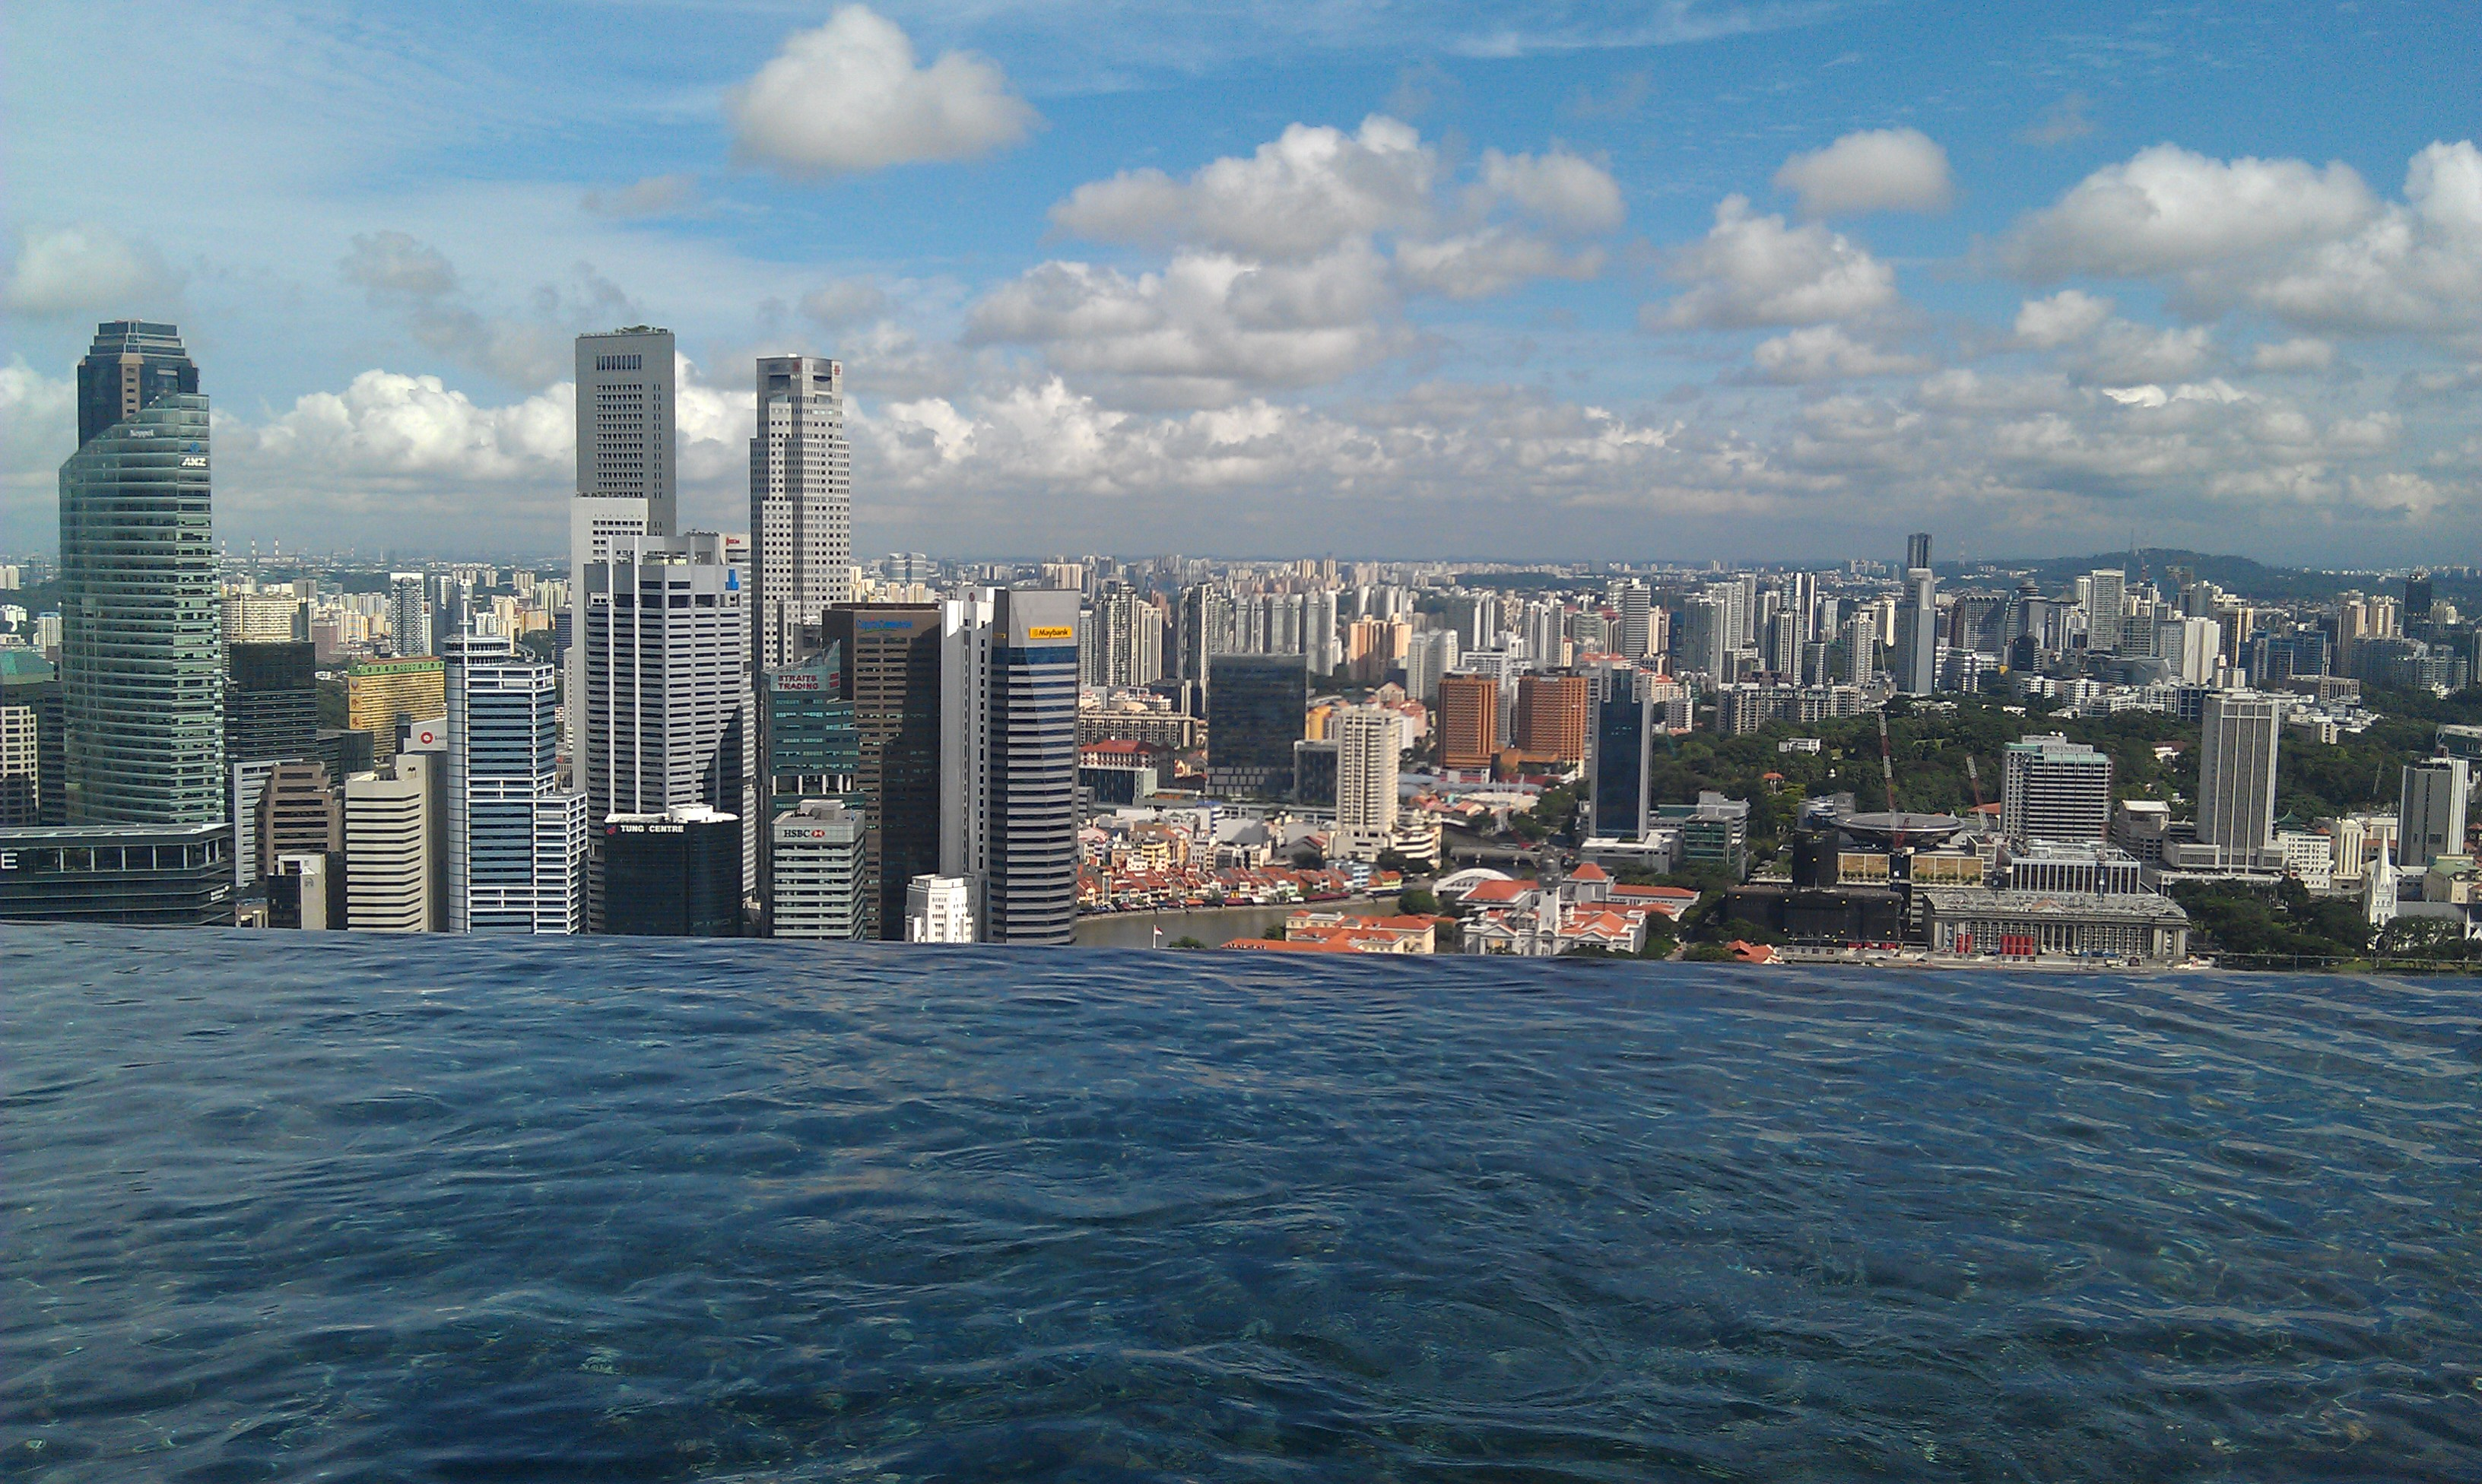 Singapore slings rooftop swims sonia jones travel - Rooftop swimming pool in singapore ...